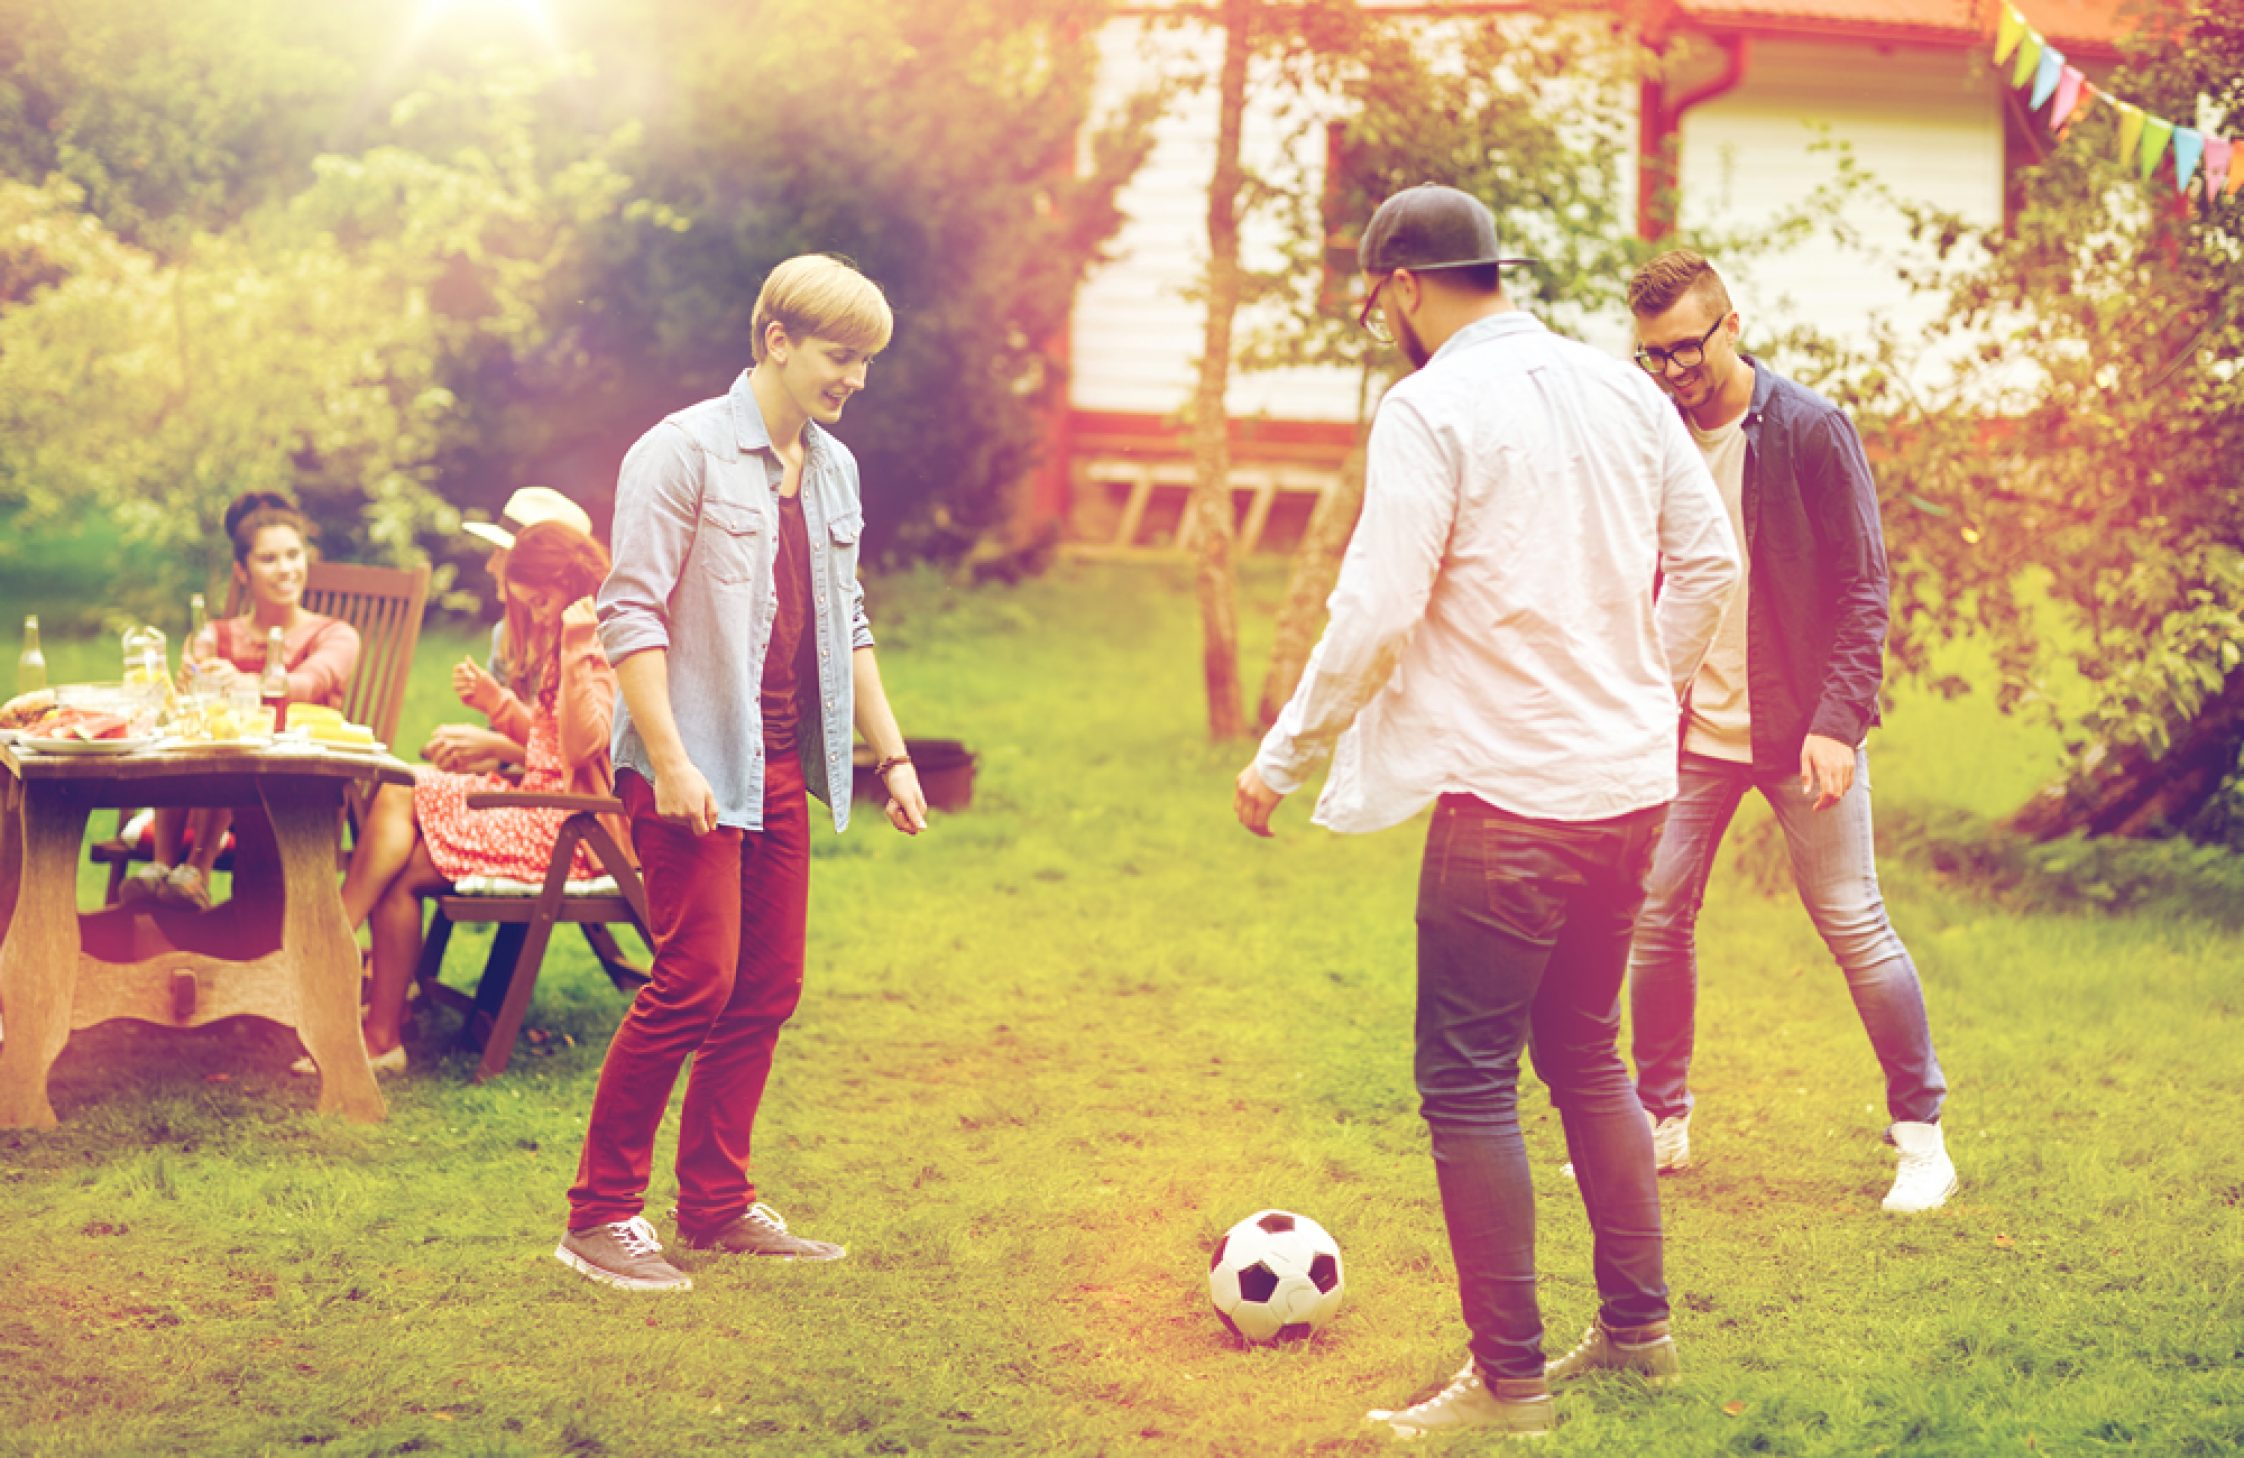 Play Footgolf this August Bank Holiday